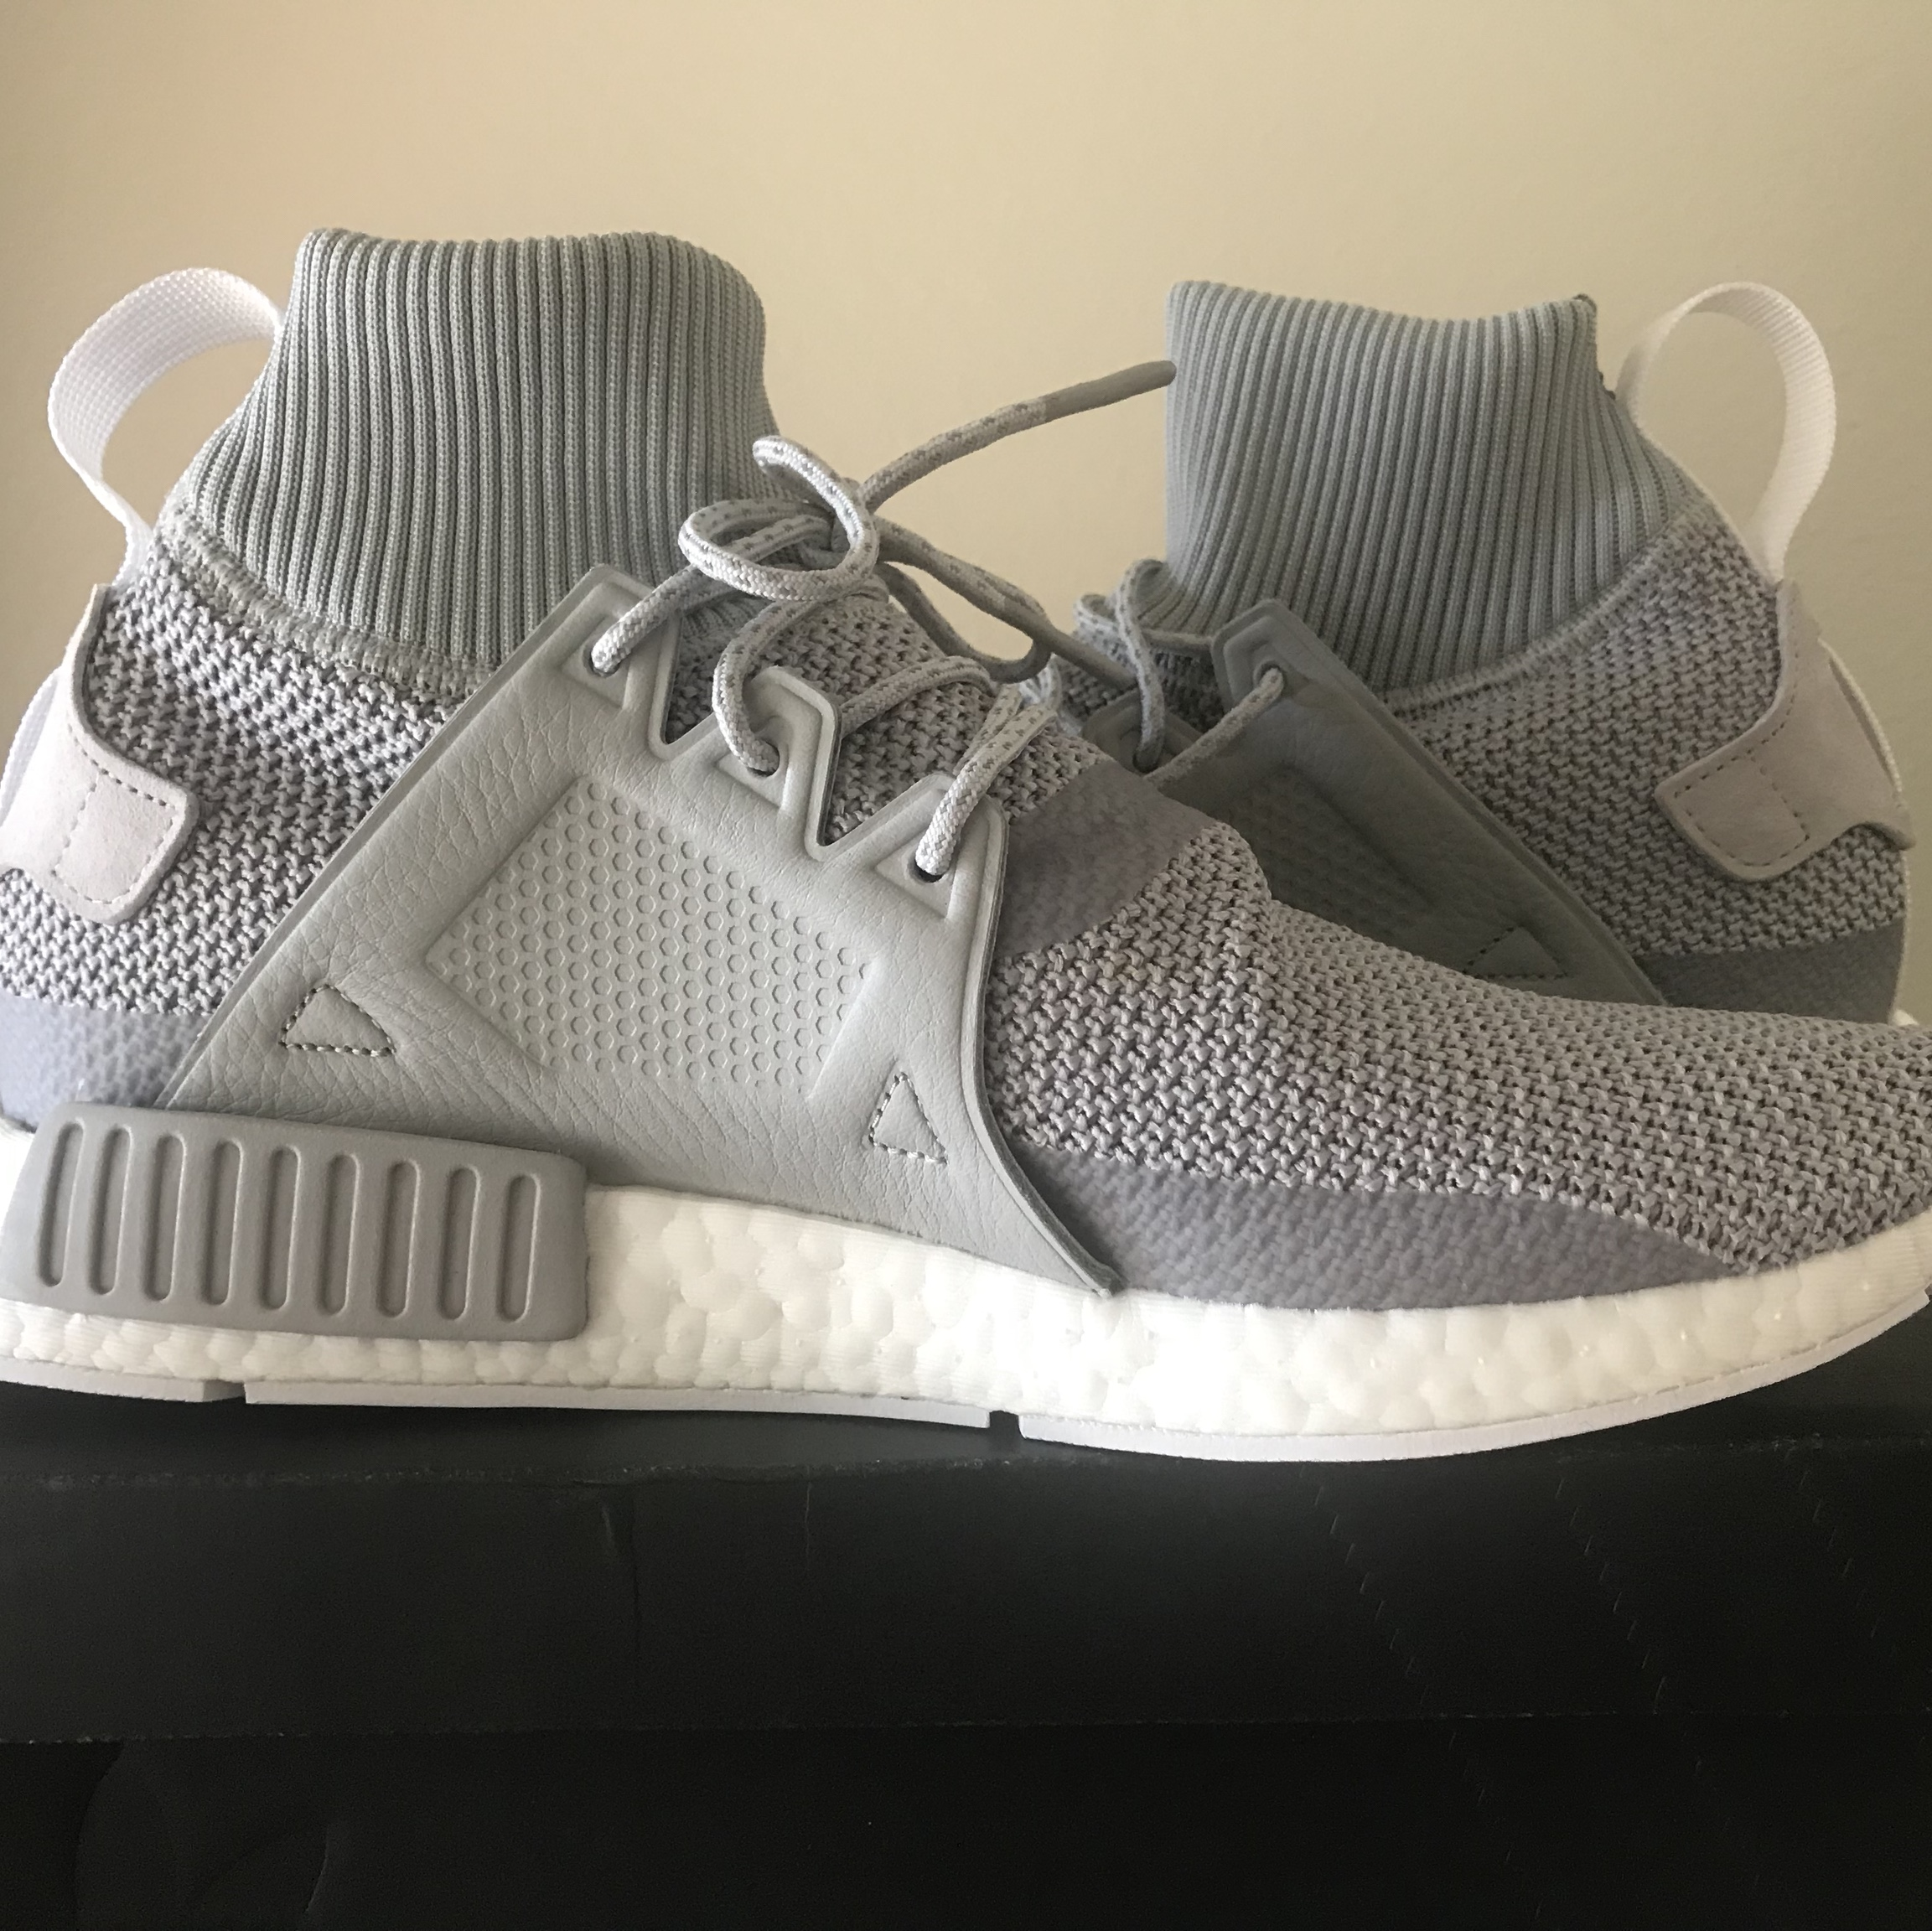 Adidas Nmd Xr1 Grey Size 10 Us Brand New With Tags Depop